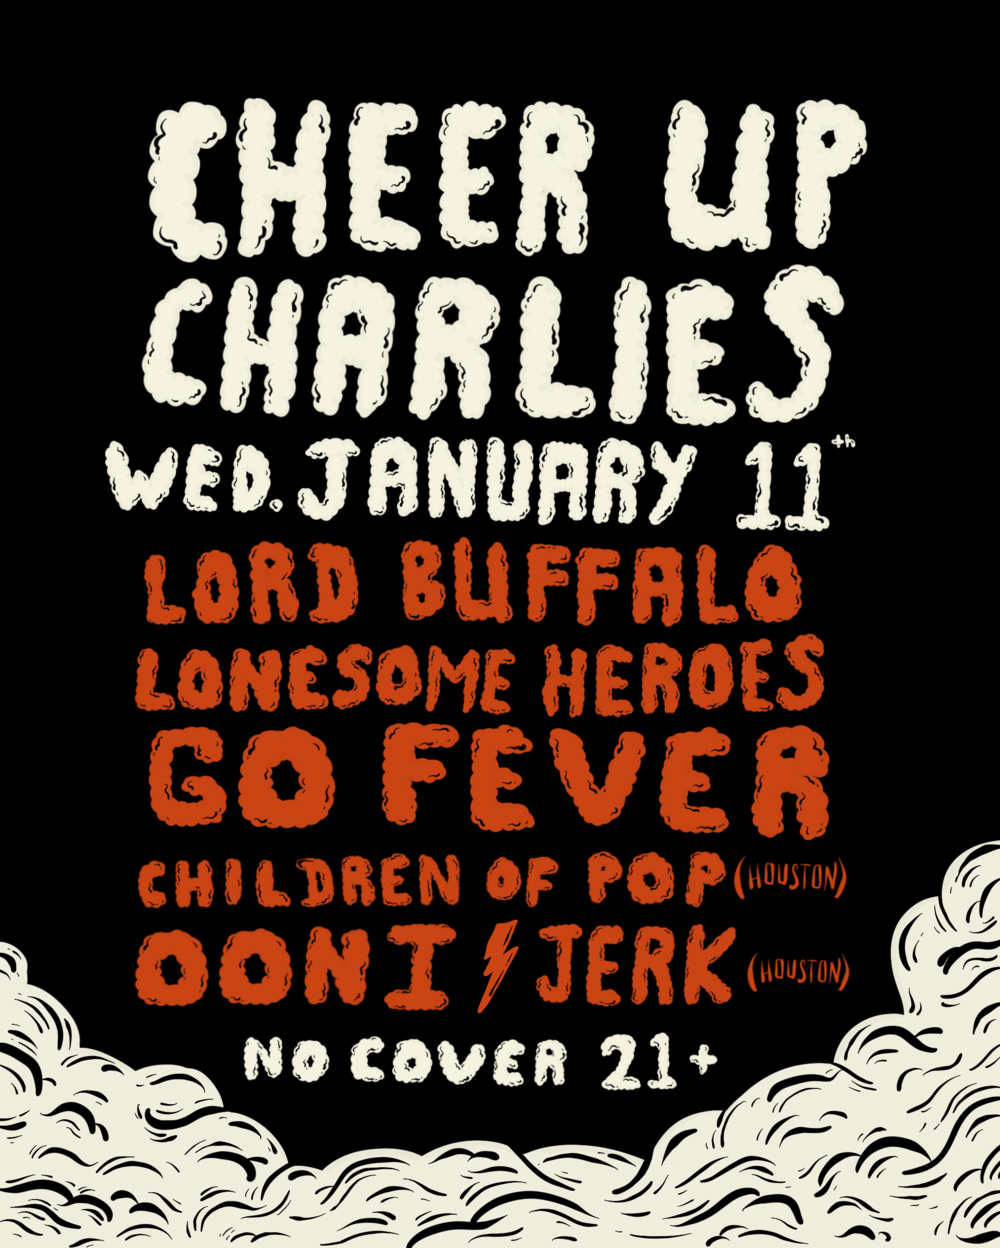 Amarah_CheerUpCharliesFlyer_January 11th.png